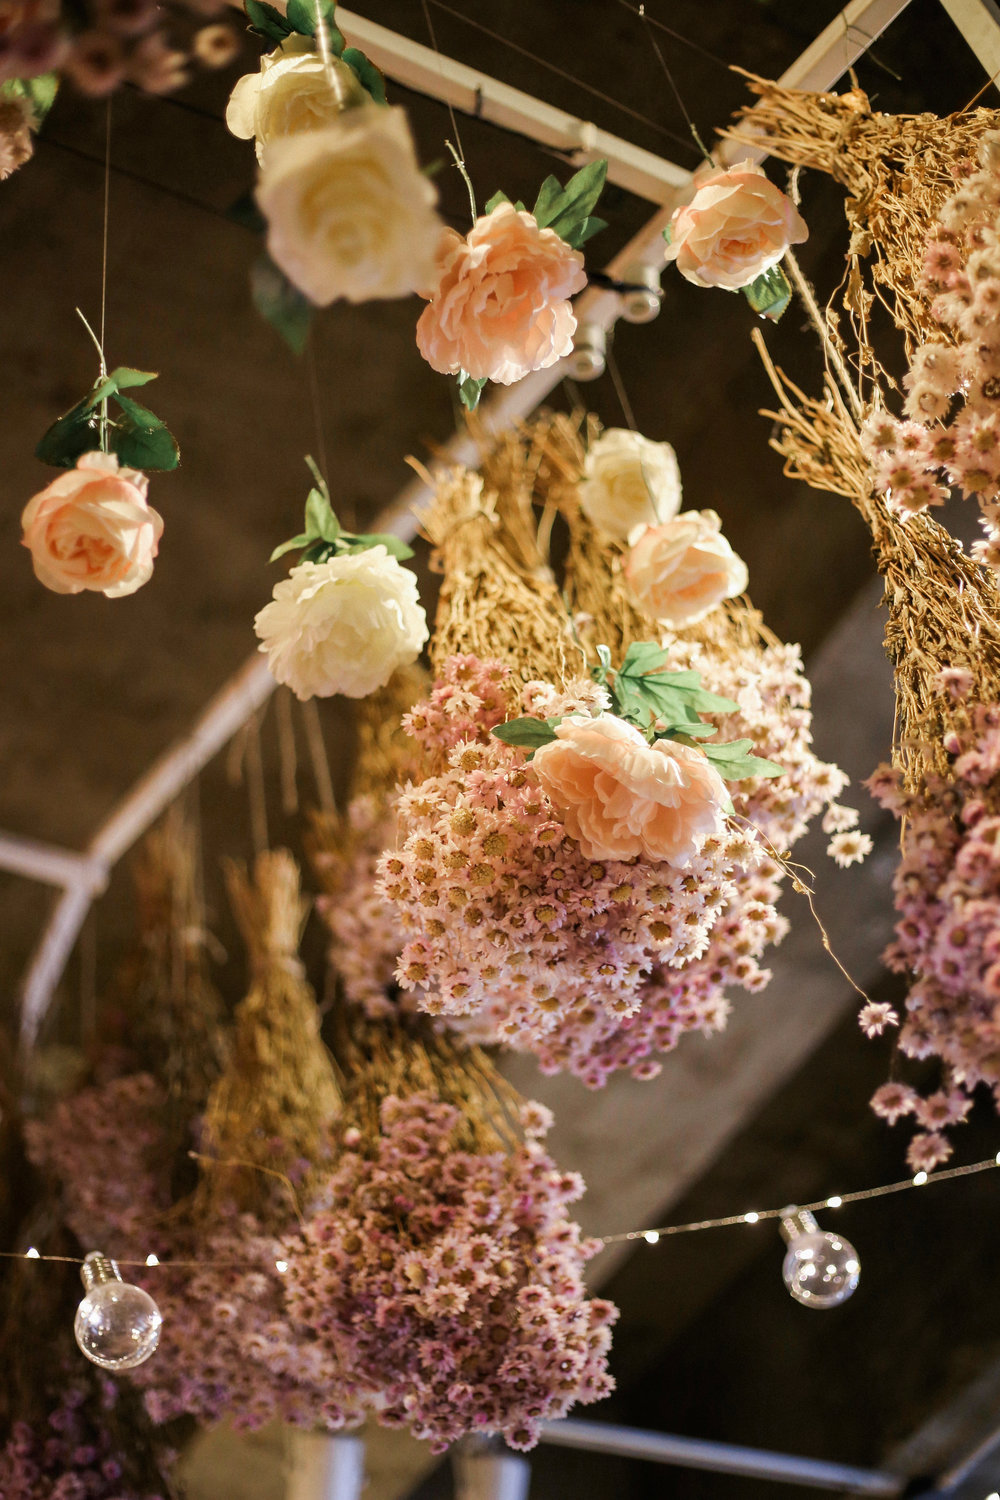 Florals for Spring | On the Street Where We Live (aretherelilactrees.com)  Cafe Arriate, Seoul